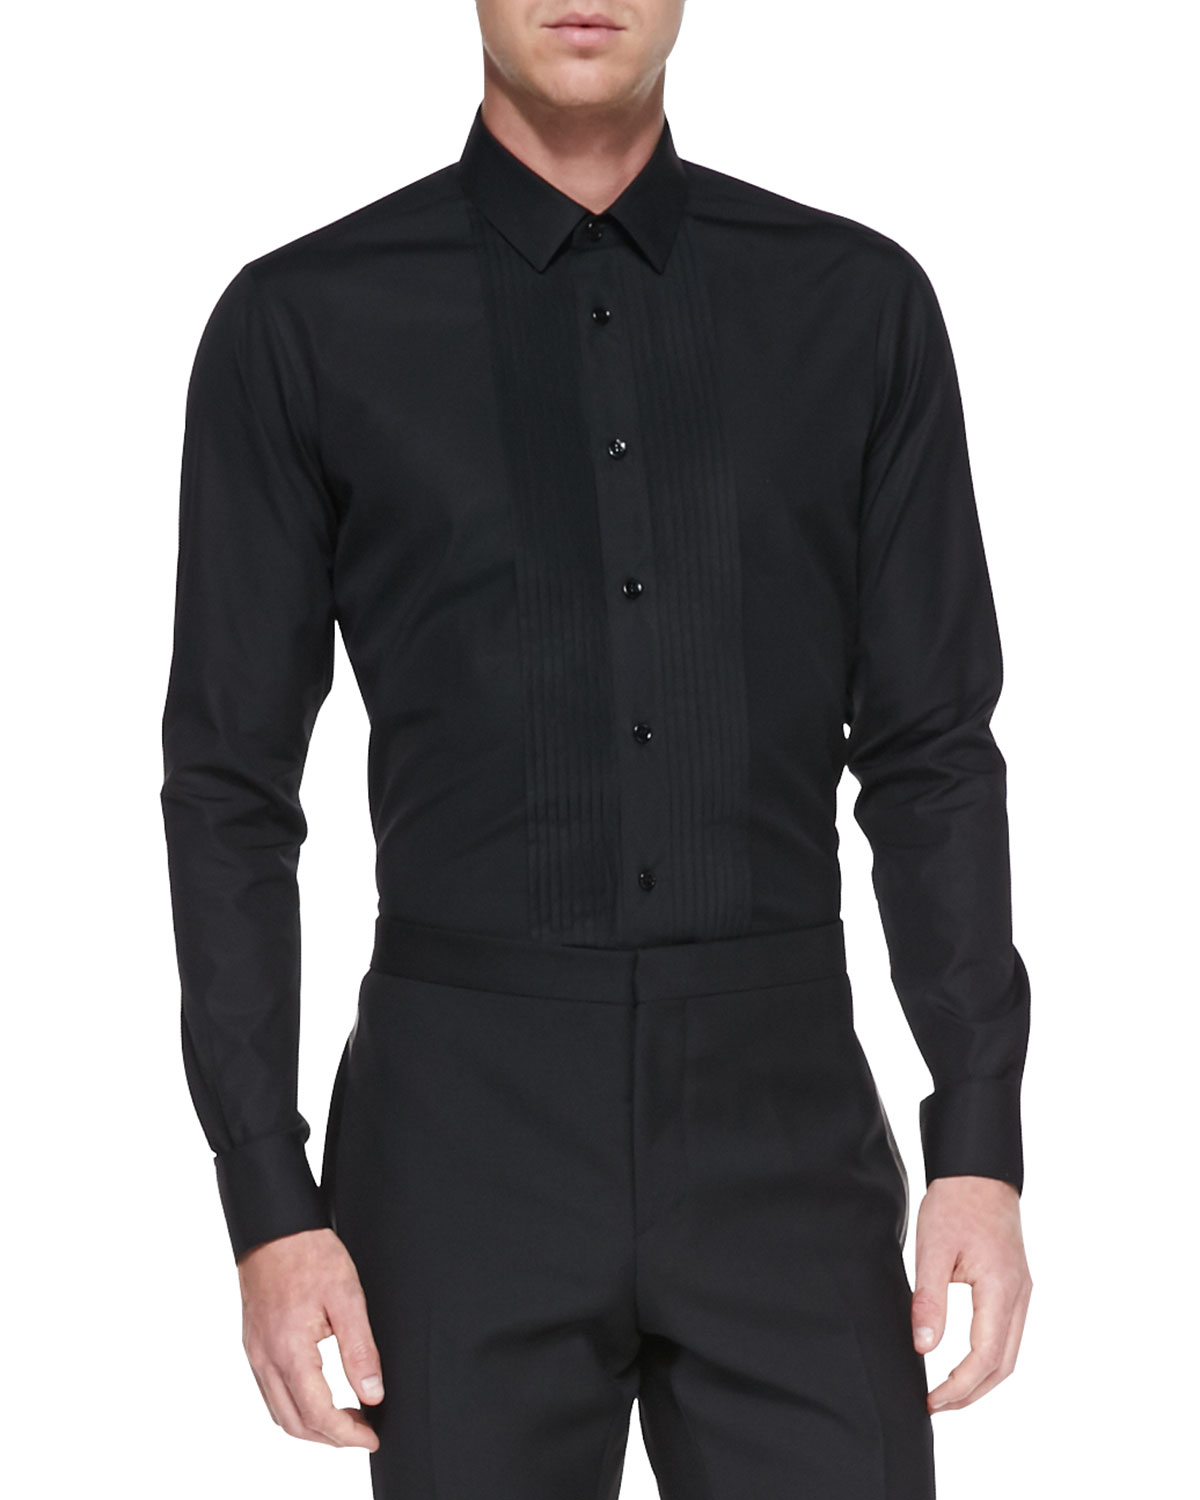 Saint laurent pleatedfront tuxedo shirt black in black for for Black tuxedo shirt for men